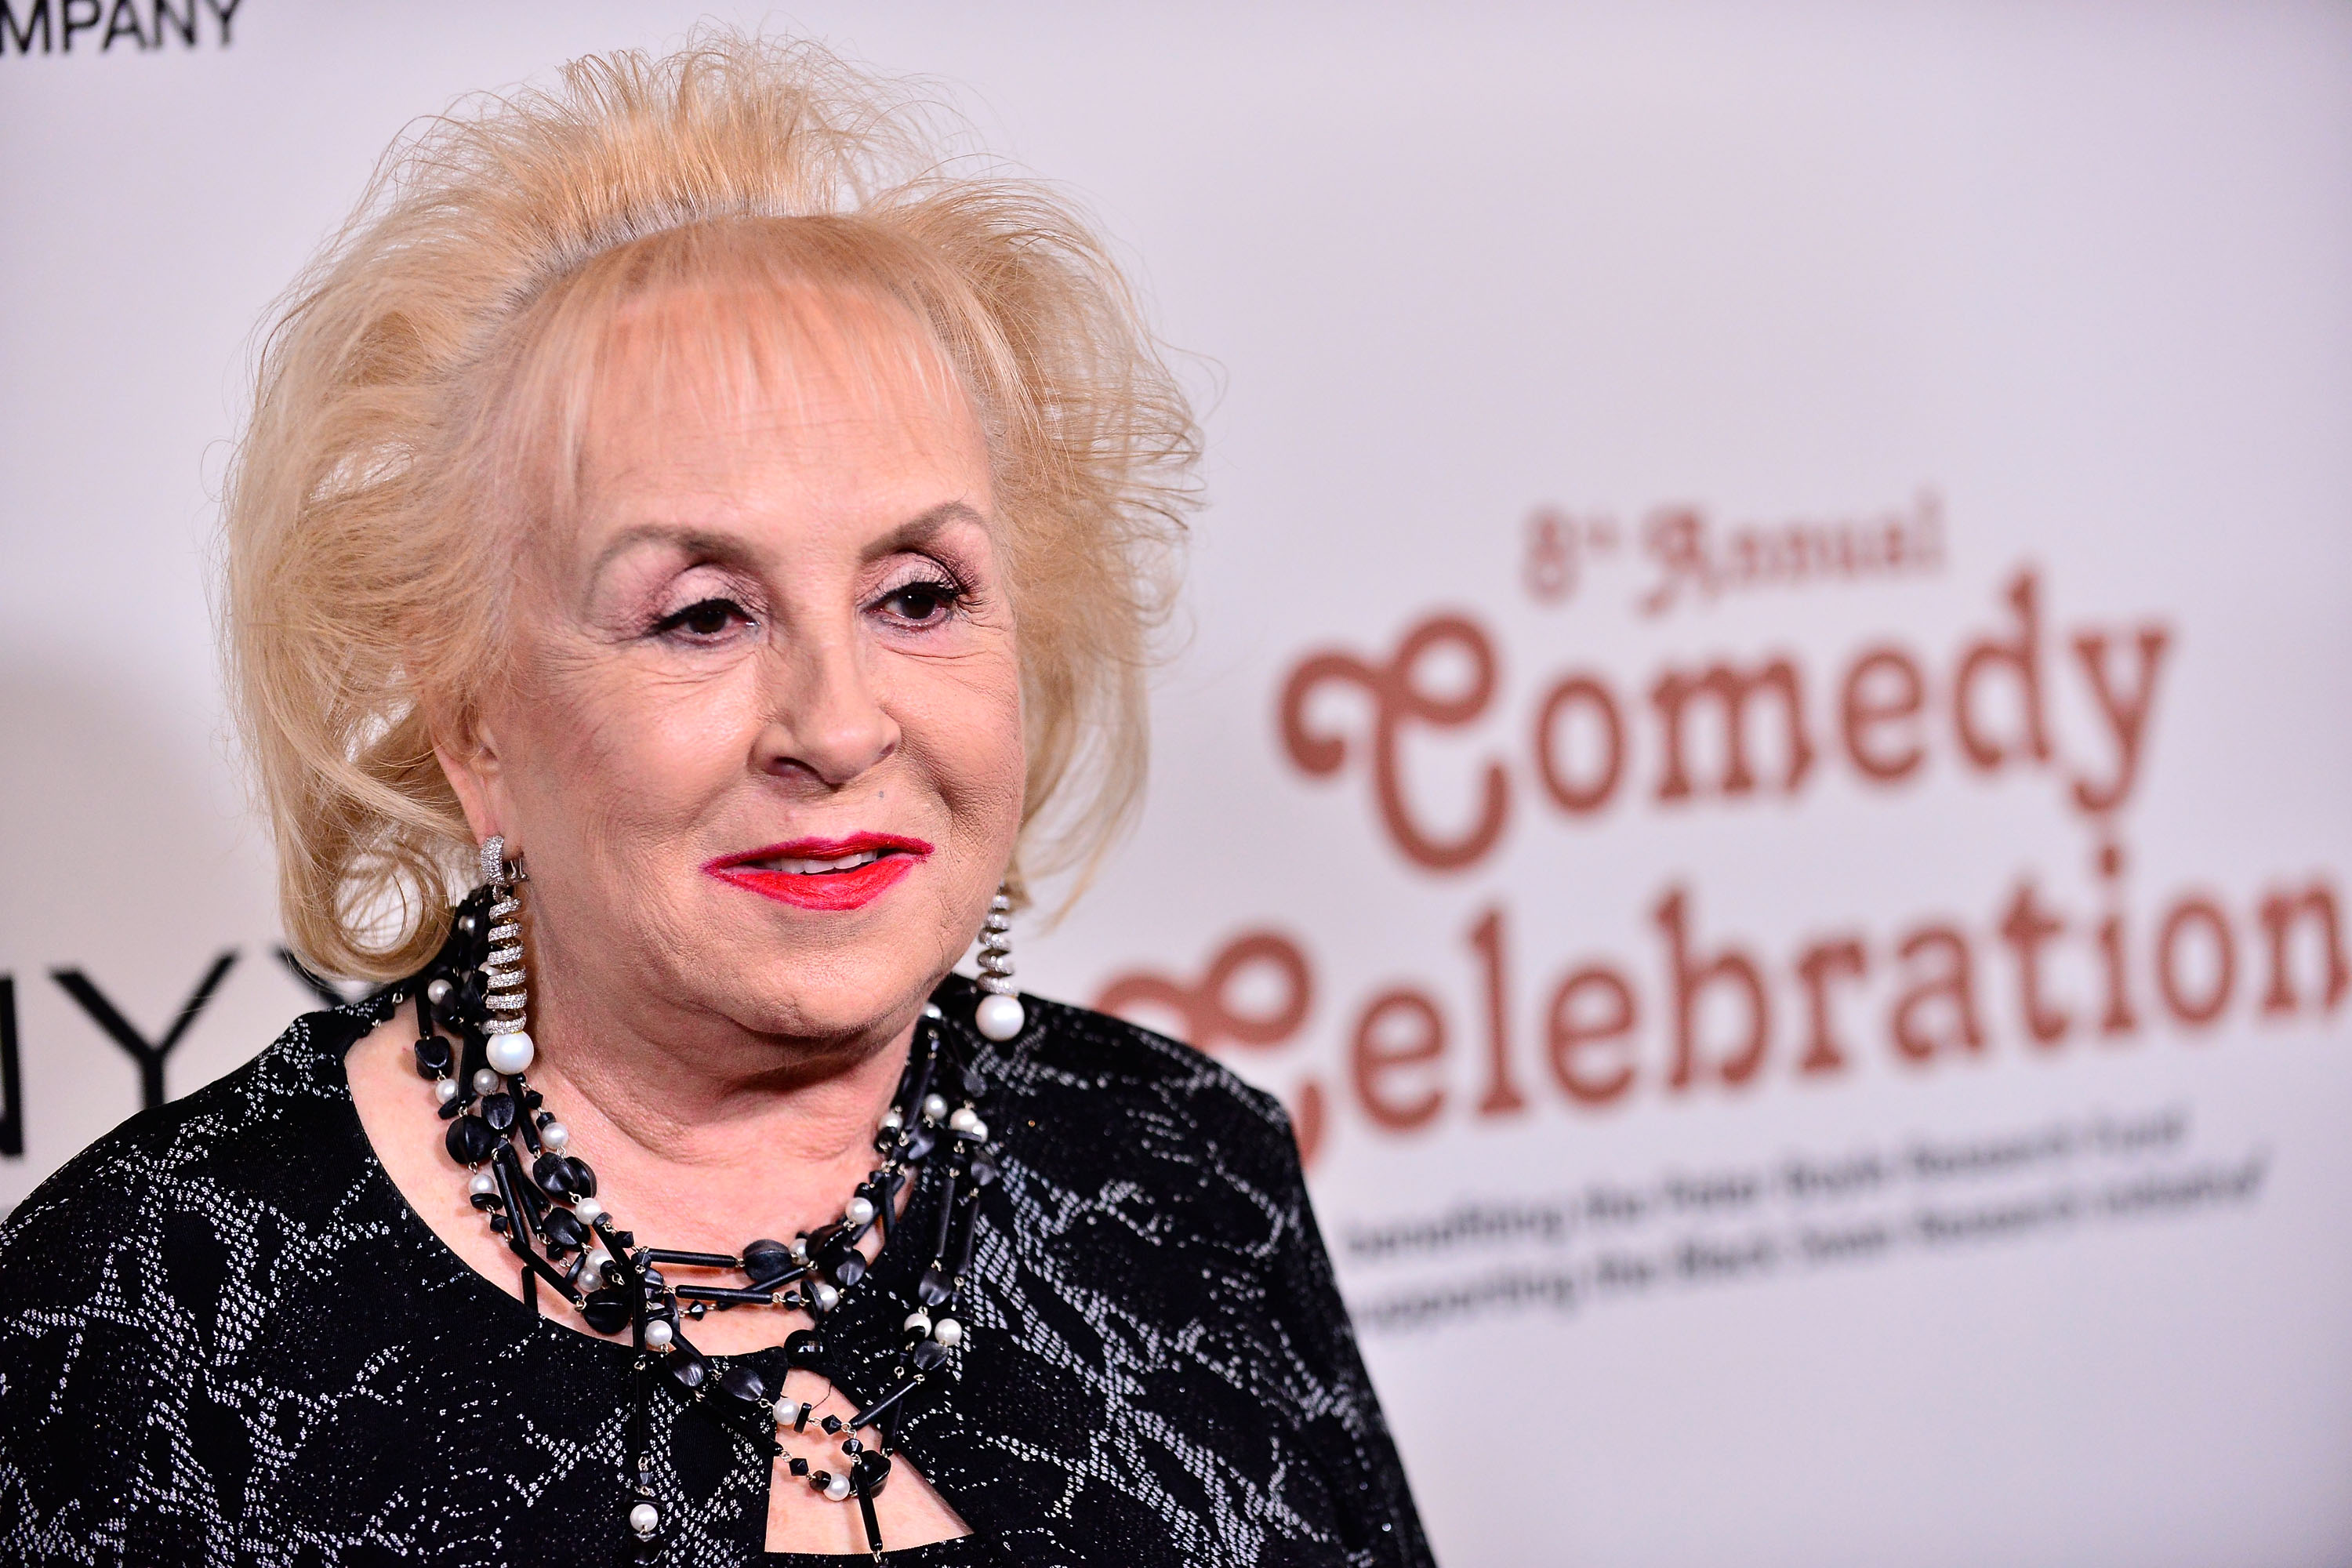 Doris Roberts attends the International Myeloma Foundation 8th annual comedy celebration 'Celebrity Autobiography' at the Wilshire Ebell Theatre on November 8, 2014 in Los Angeles, California.